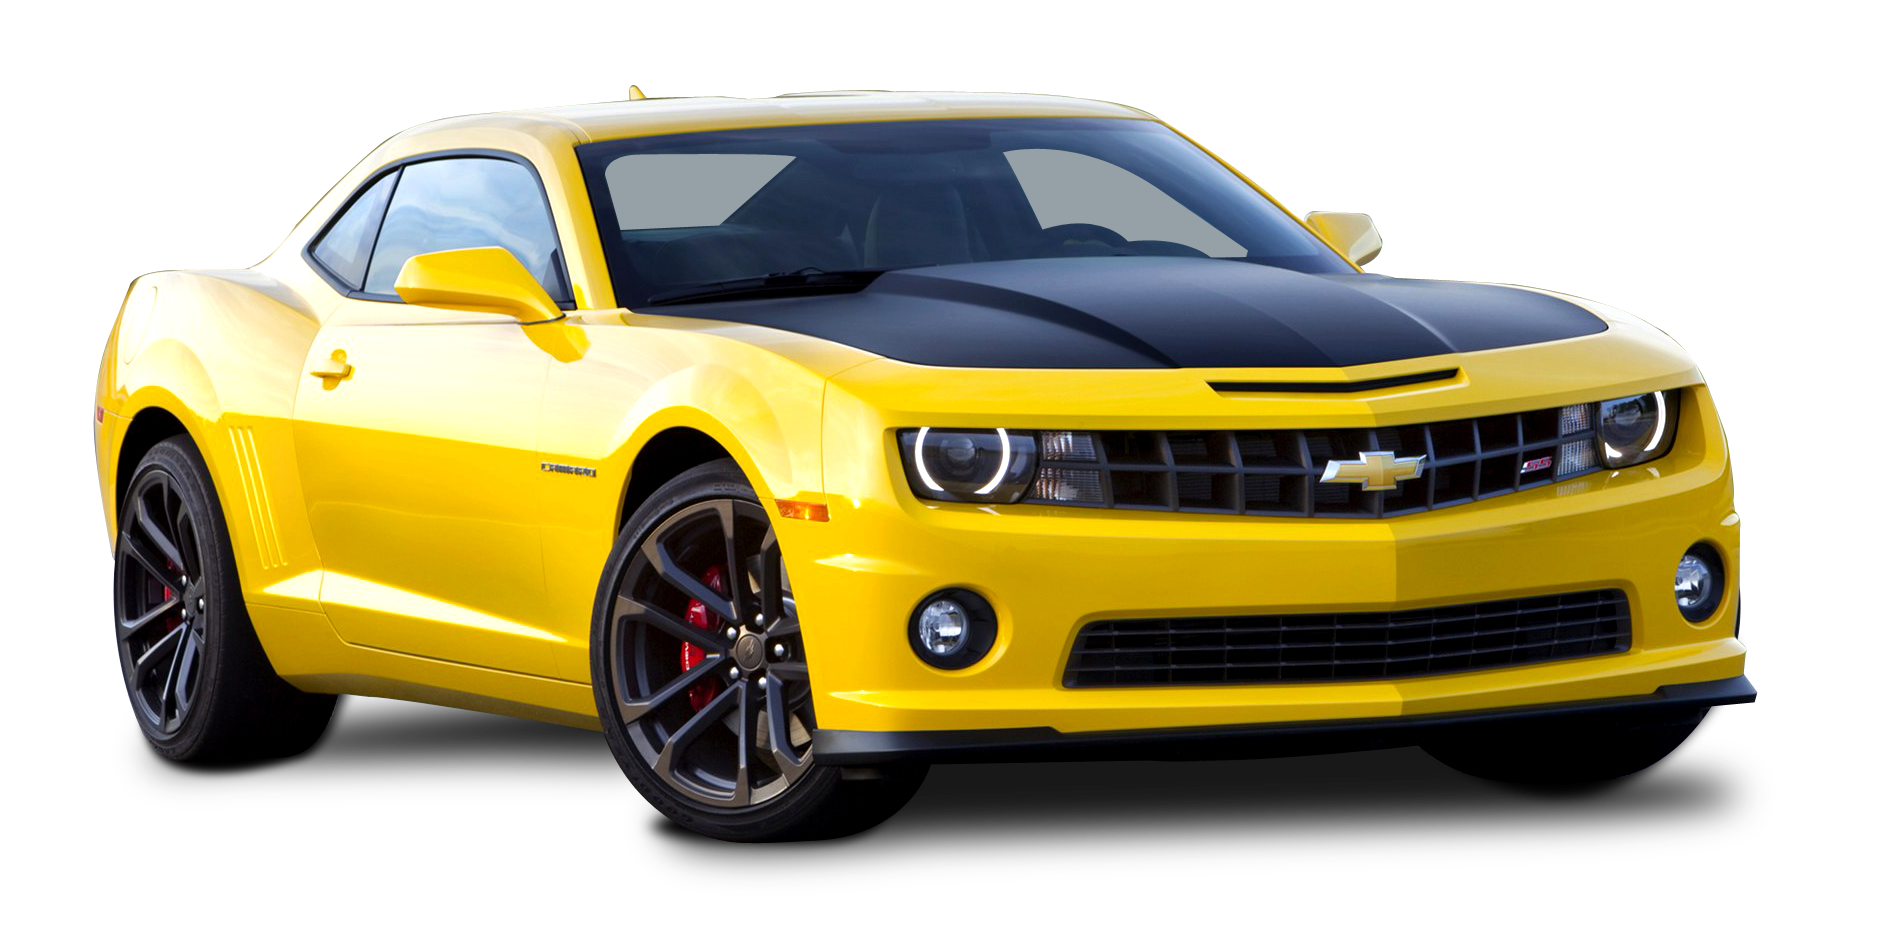 Yellow Chevrolet Camaro 1le Car Png Image Pngpix